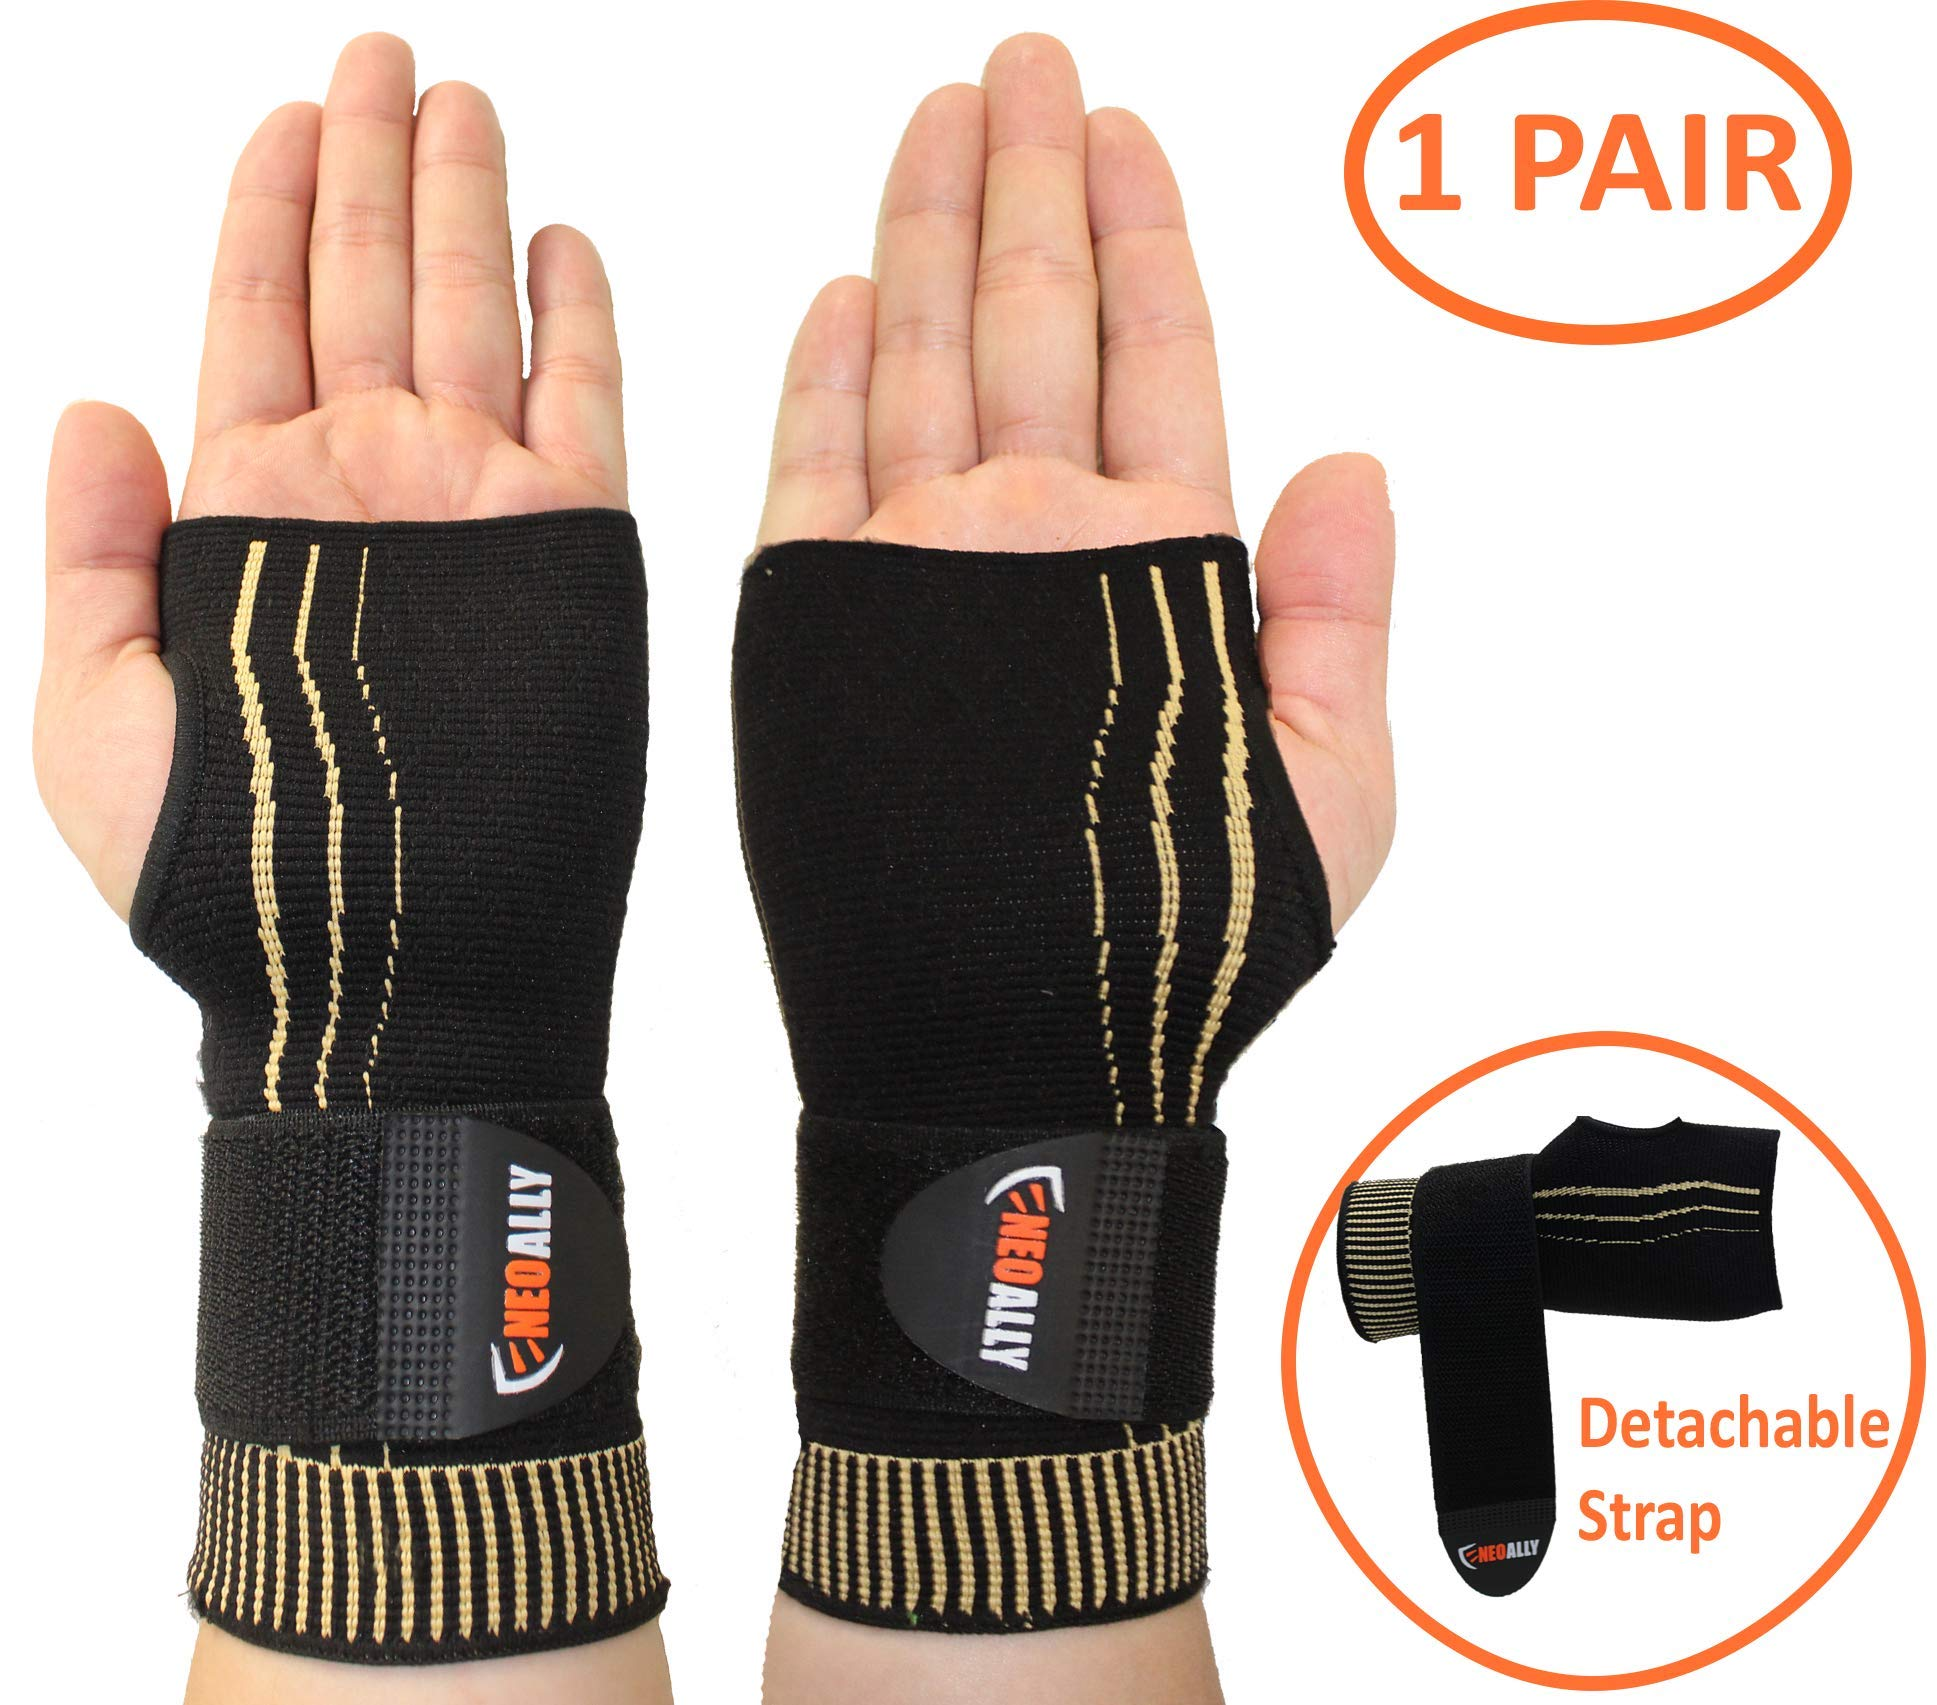 NeoAlly Adjustable Wrist Support Sleeve - Copper Compression Carpal Tunnel Gloves for Arthritis, Tendonitis, Bursitis and Wrist Sprain Large (1 Pair)